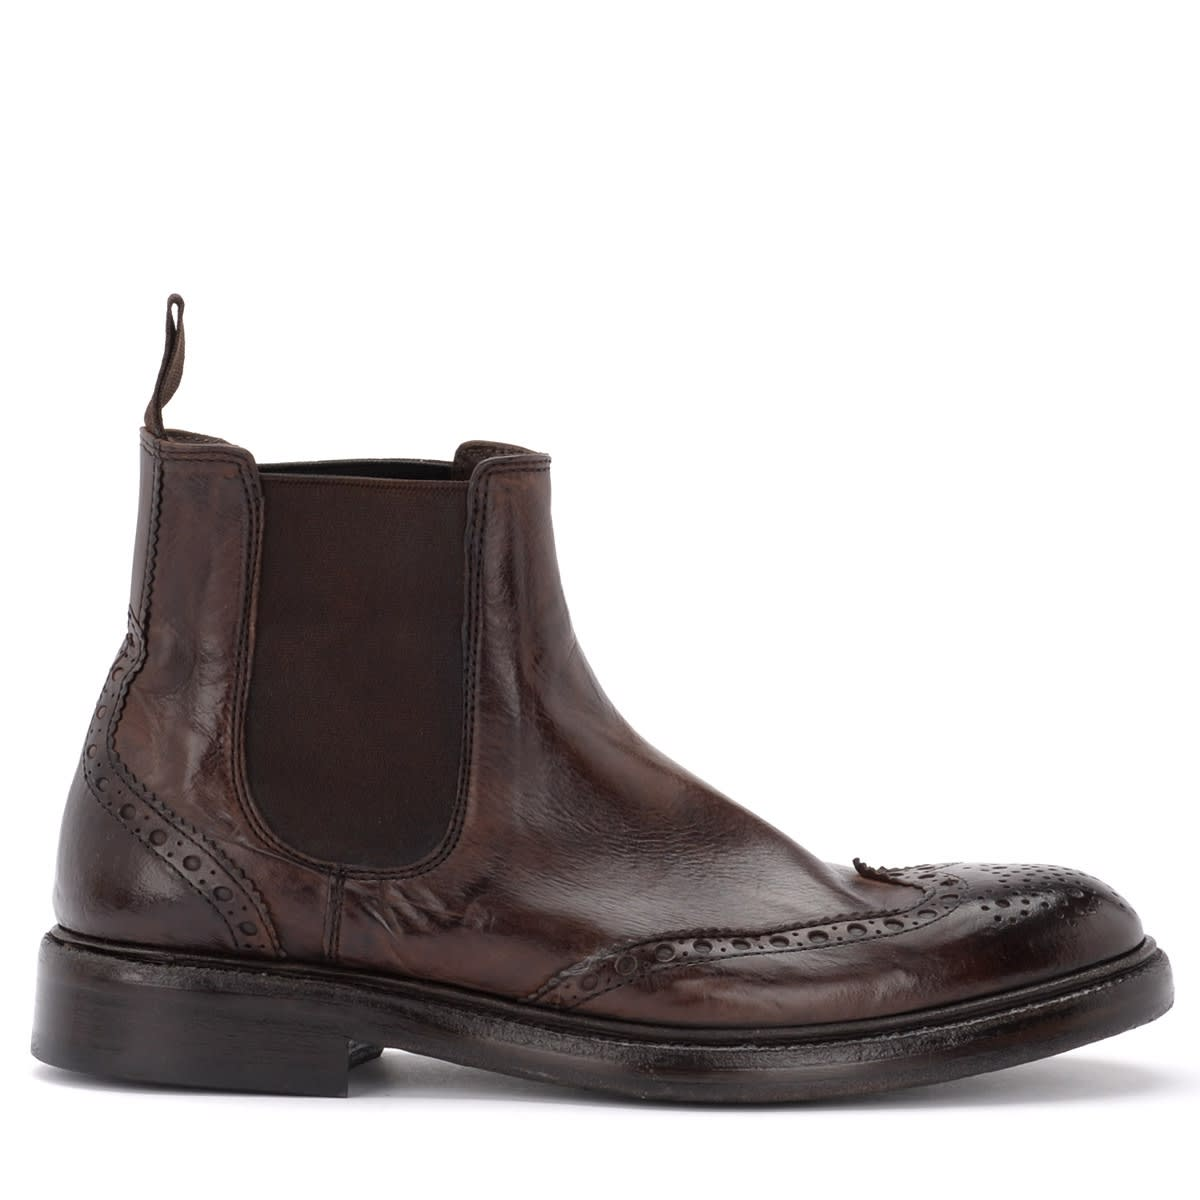 Polish Shoe Maremma In Brown Effect Washed Leather